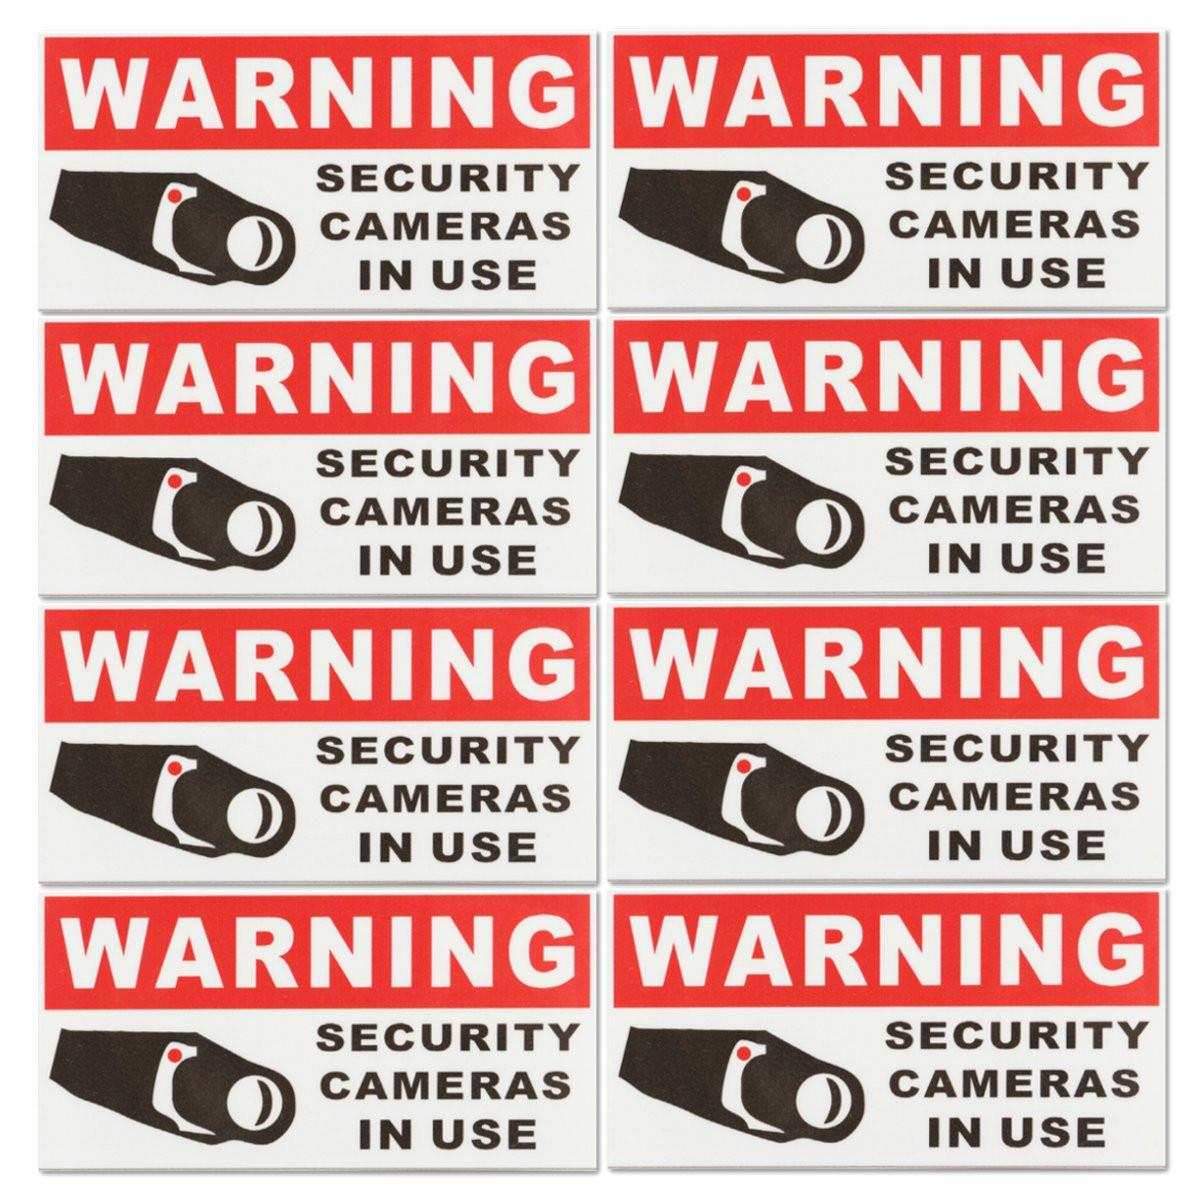 8Pcs SECURITY CAMERA IN USE Waterproof Self-adhensive Warning Stickers Safety Signs Decal